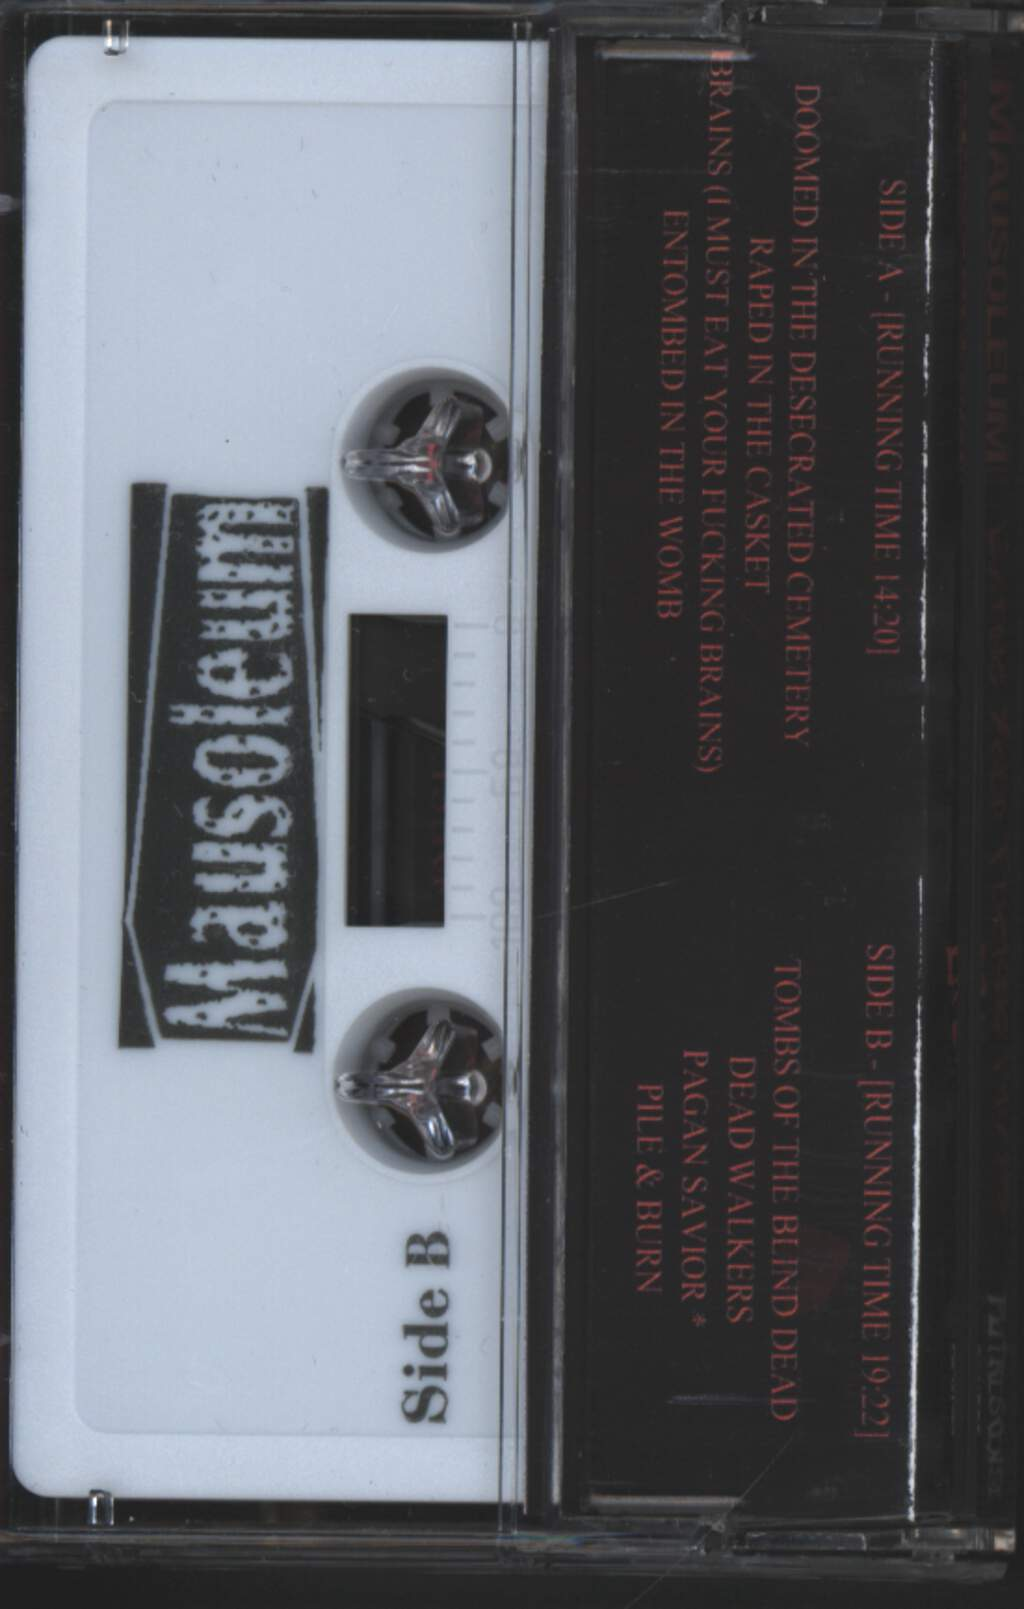 Mausoleum: Eating Your Fucking Brains Live, Compact Cassette